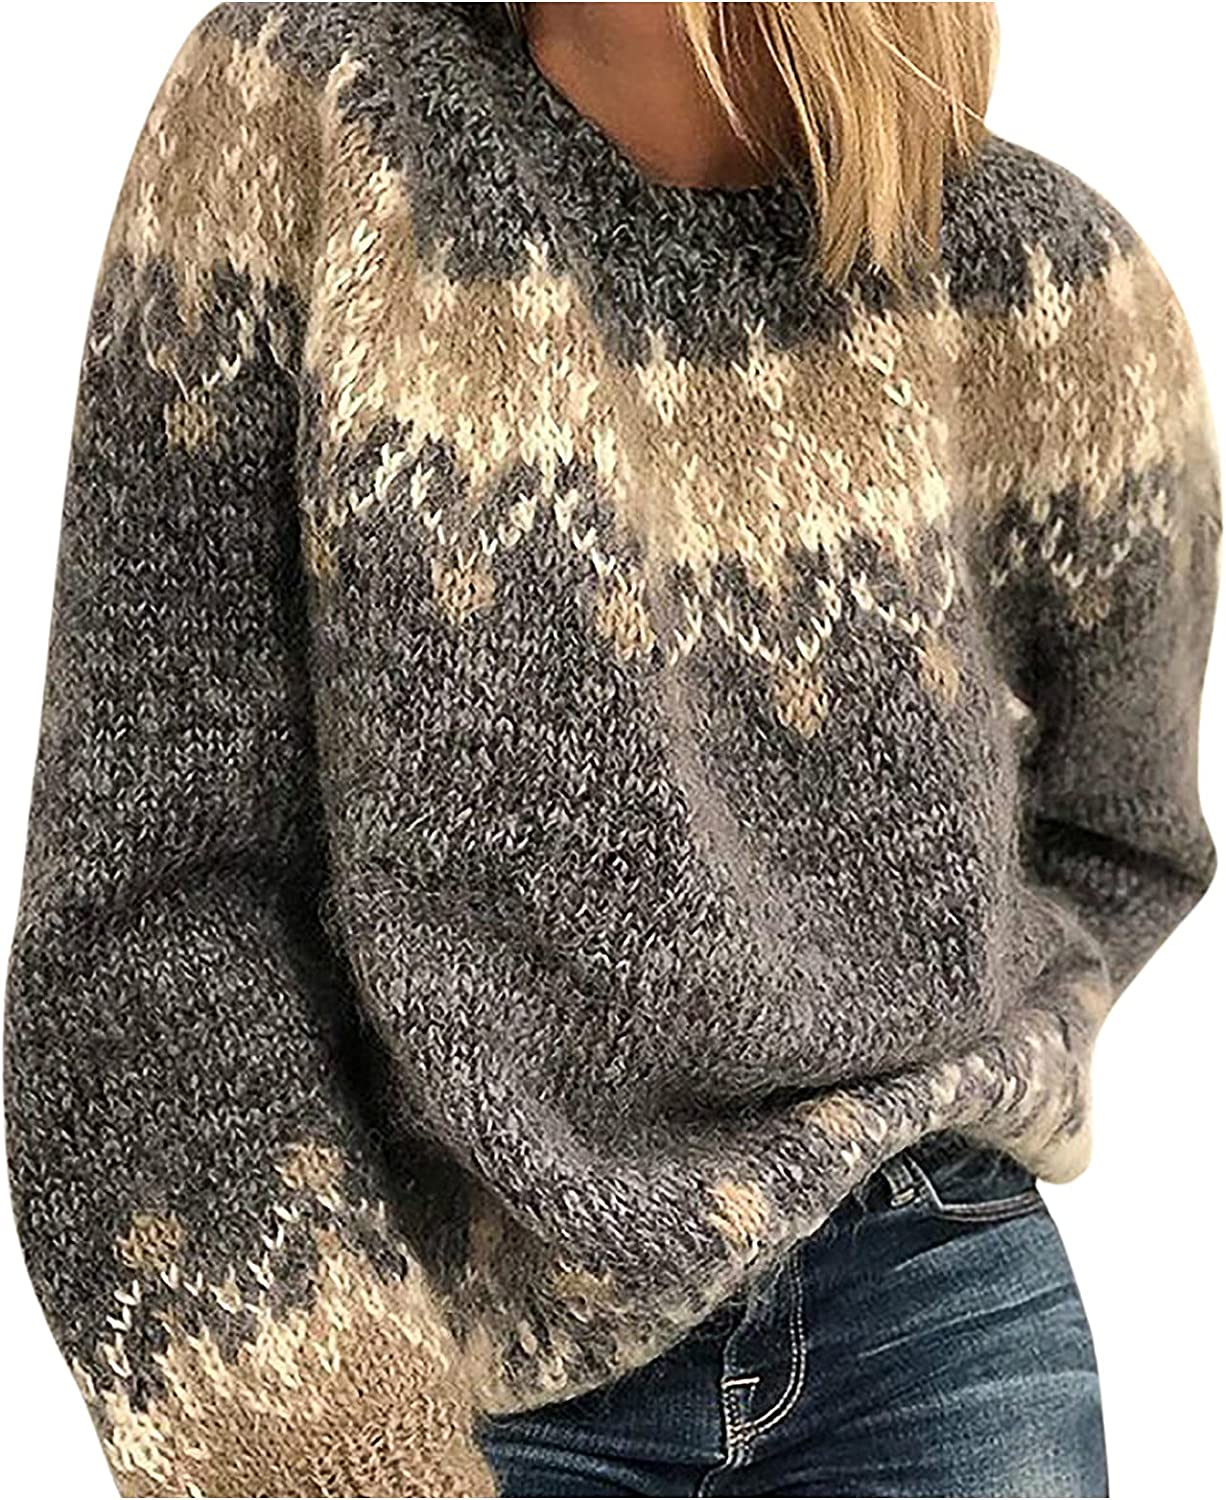 Women Casual Knitted Sweater Large Sizes Loose Printed Long Sleeve O-Neck Blouse Mohair Chunky Jacquard Winter Top